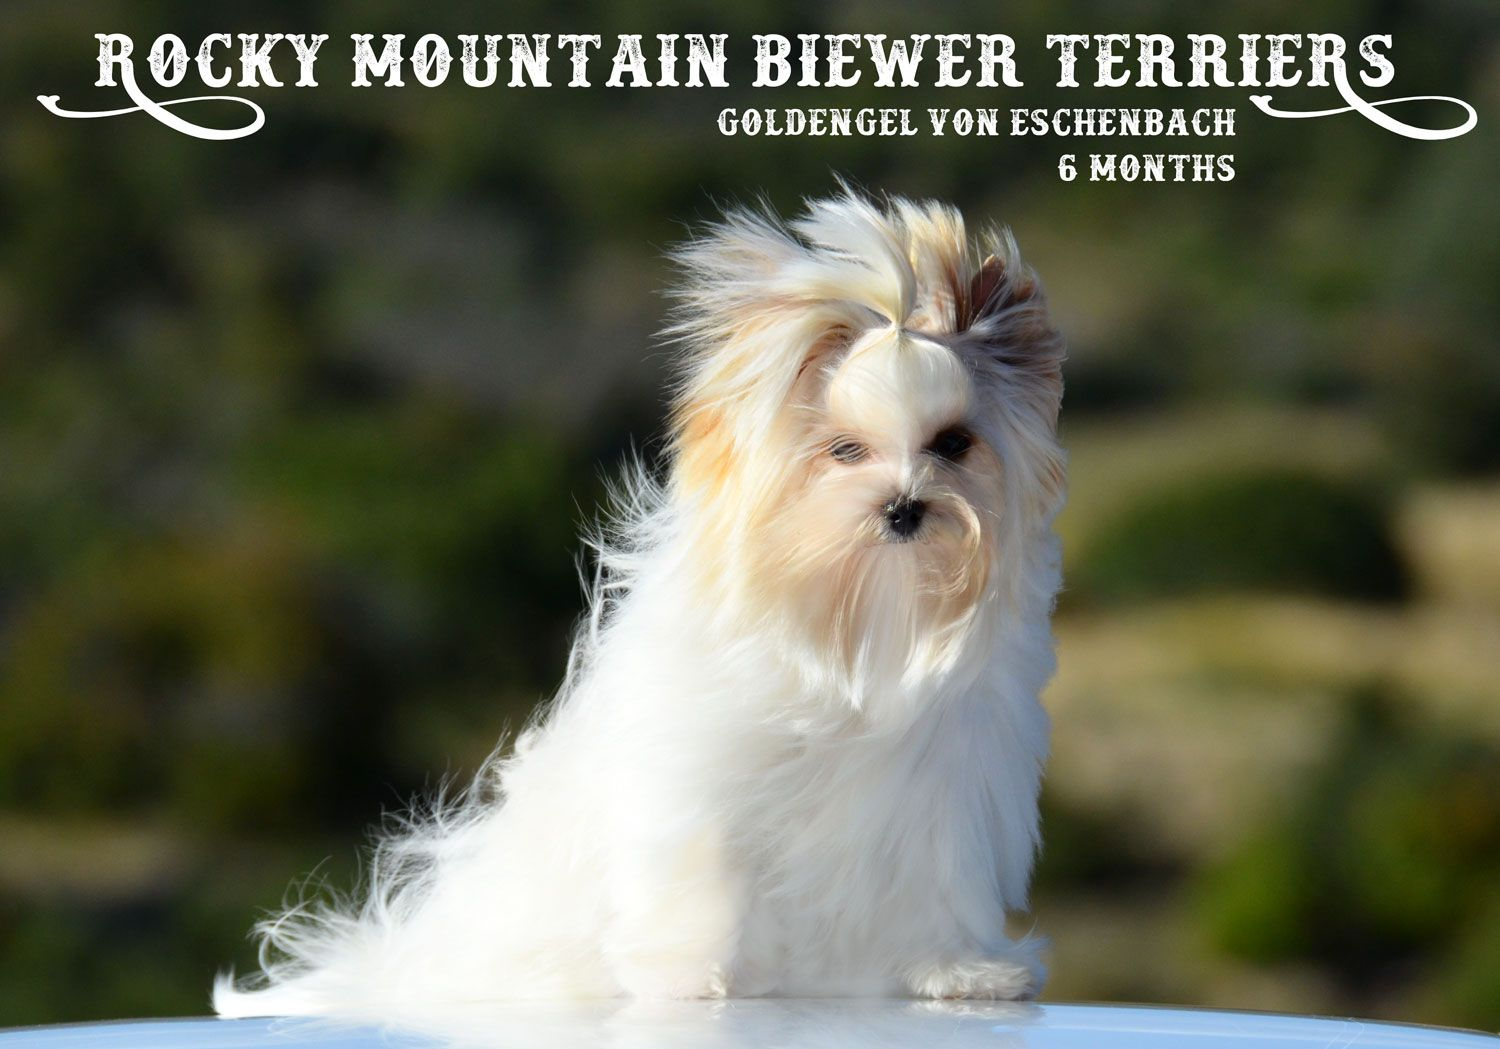 Biewer Terrier Stud Service Is Available To Selected Females At Rocky Mountain Biewer Terriers Yorkshire Terrier Yorkshire Terrier Dog Yorkshire Terrier Training